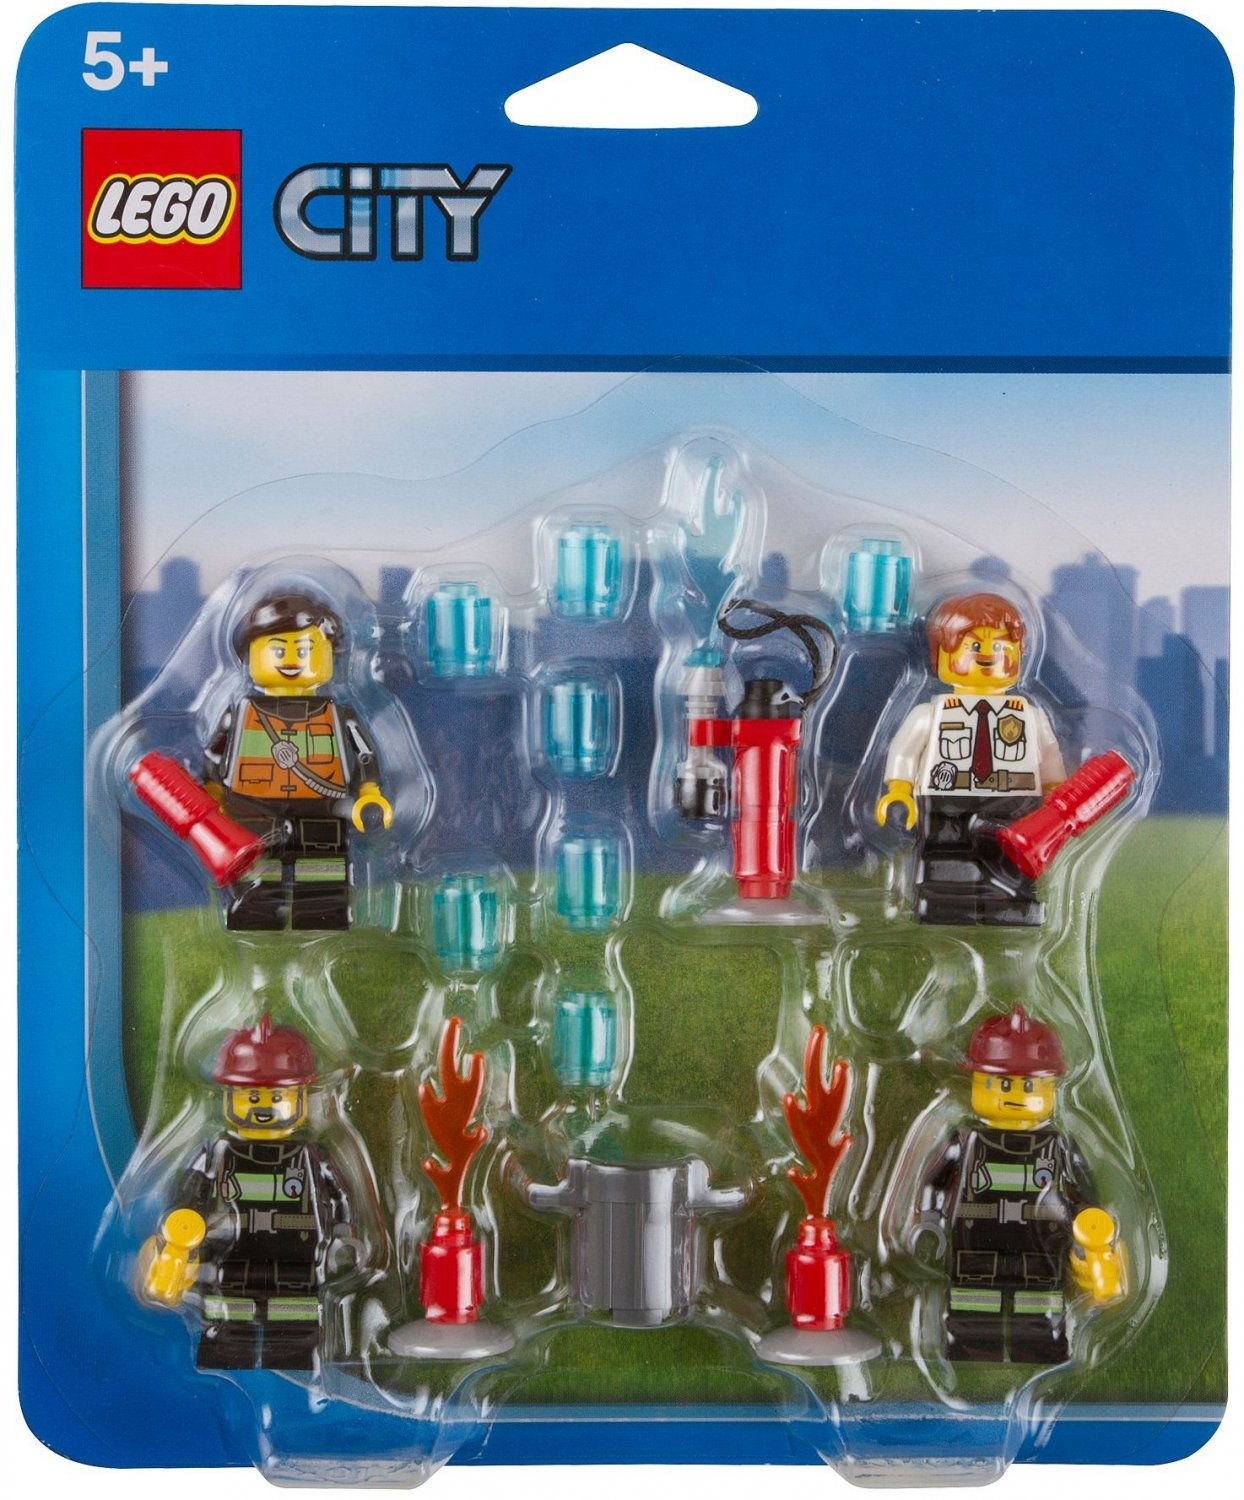 Lego City Fire Accessory Pack 850618 (2013) New on Blister Pack!